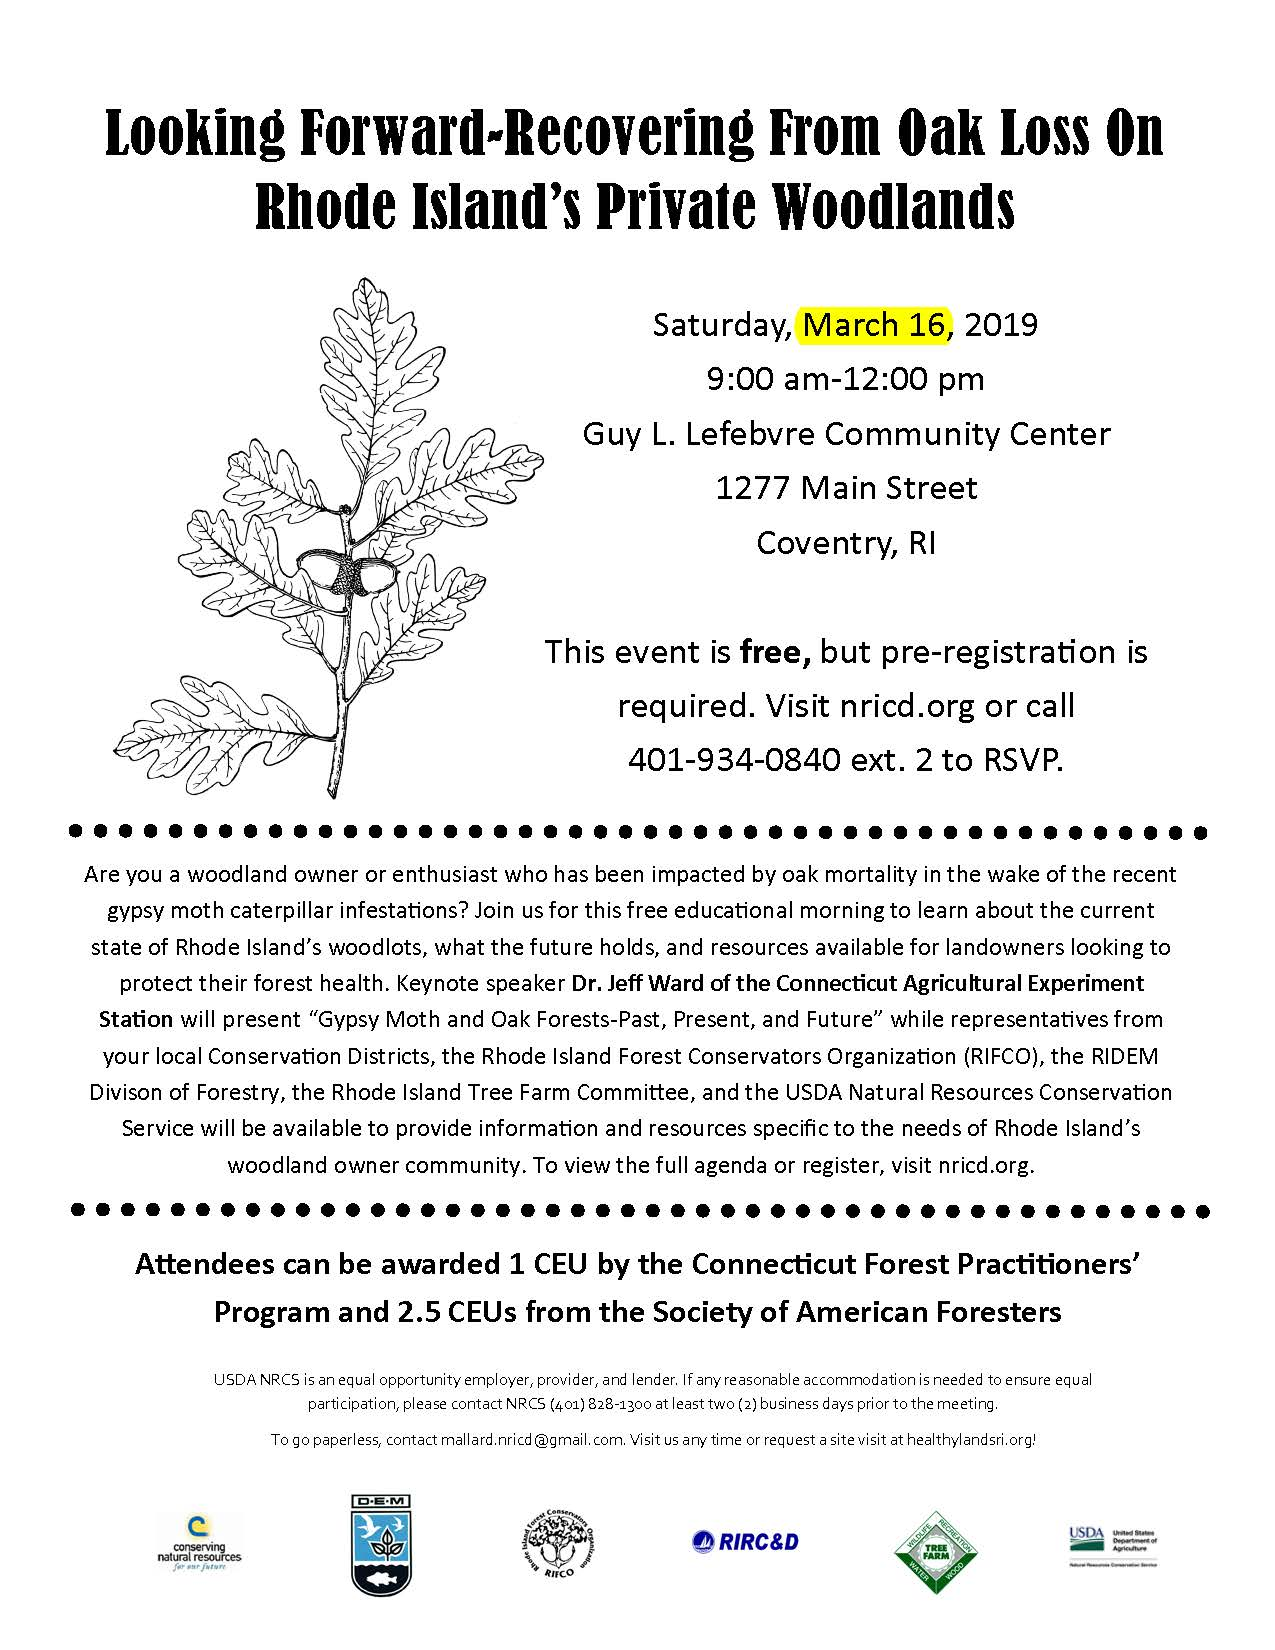 Recovering from Oak Loss on RI's Private Woodlands – Saturday, March 16 from 9 – noon at the Guy Lefebvre Community Center, 1277 Main Street in Coventry.